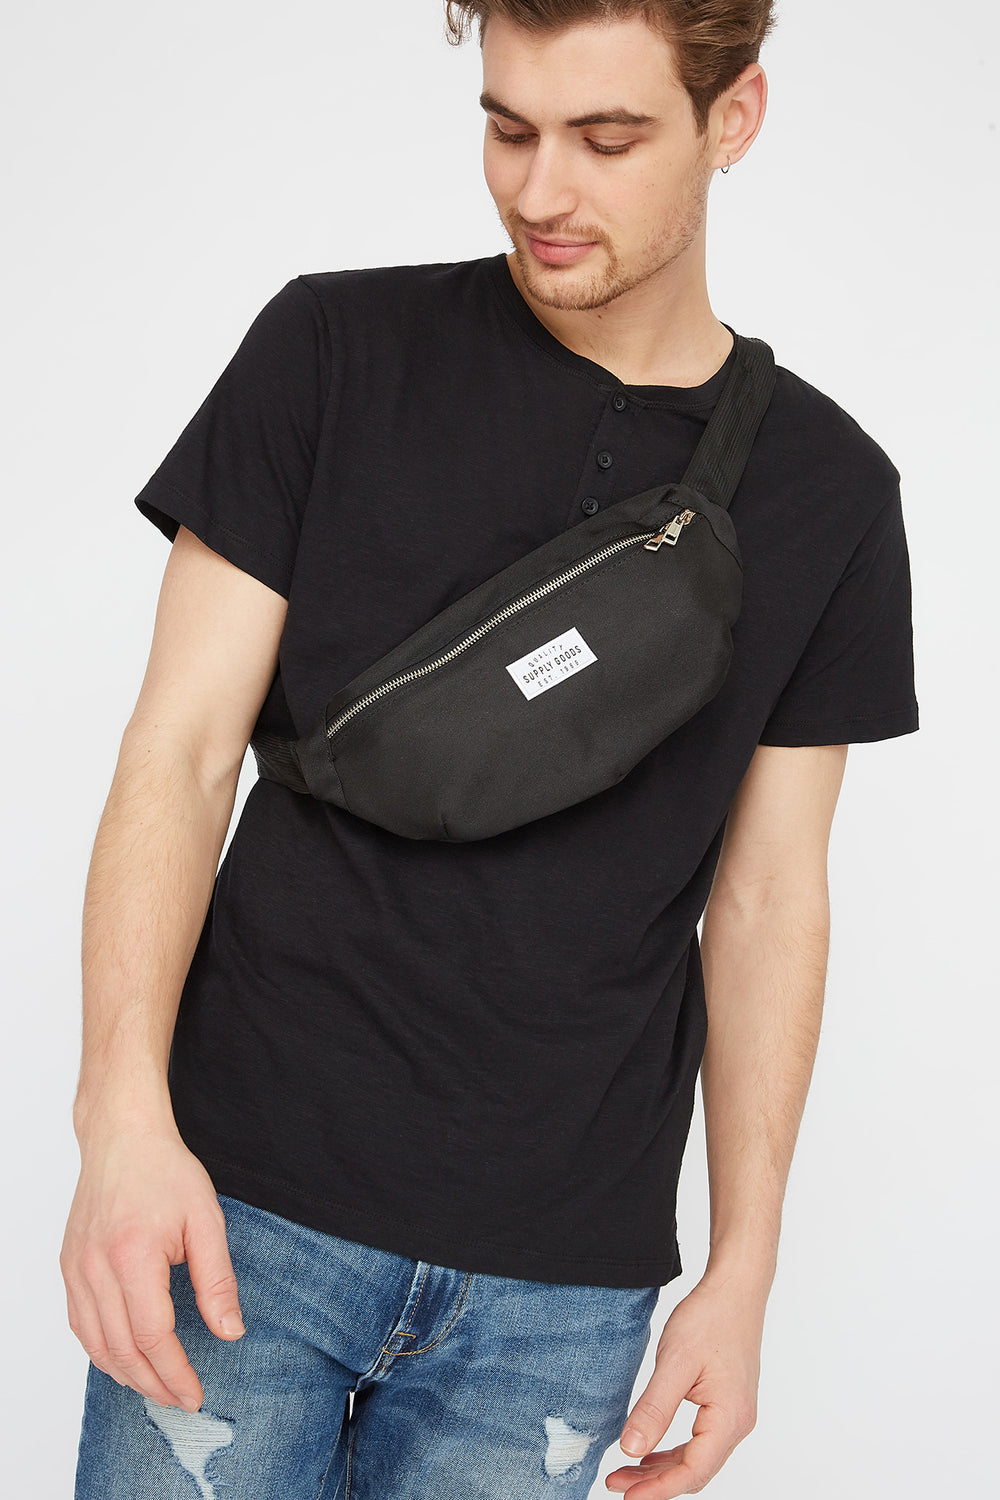 Quality Supply Goods Graphic Fanny Pack Black